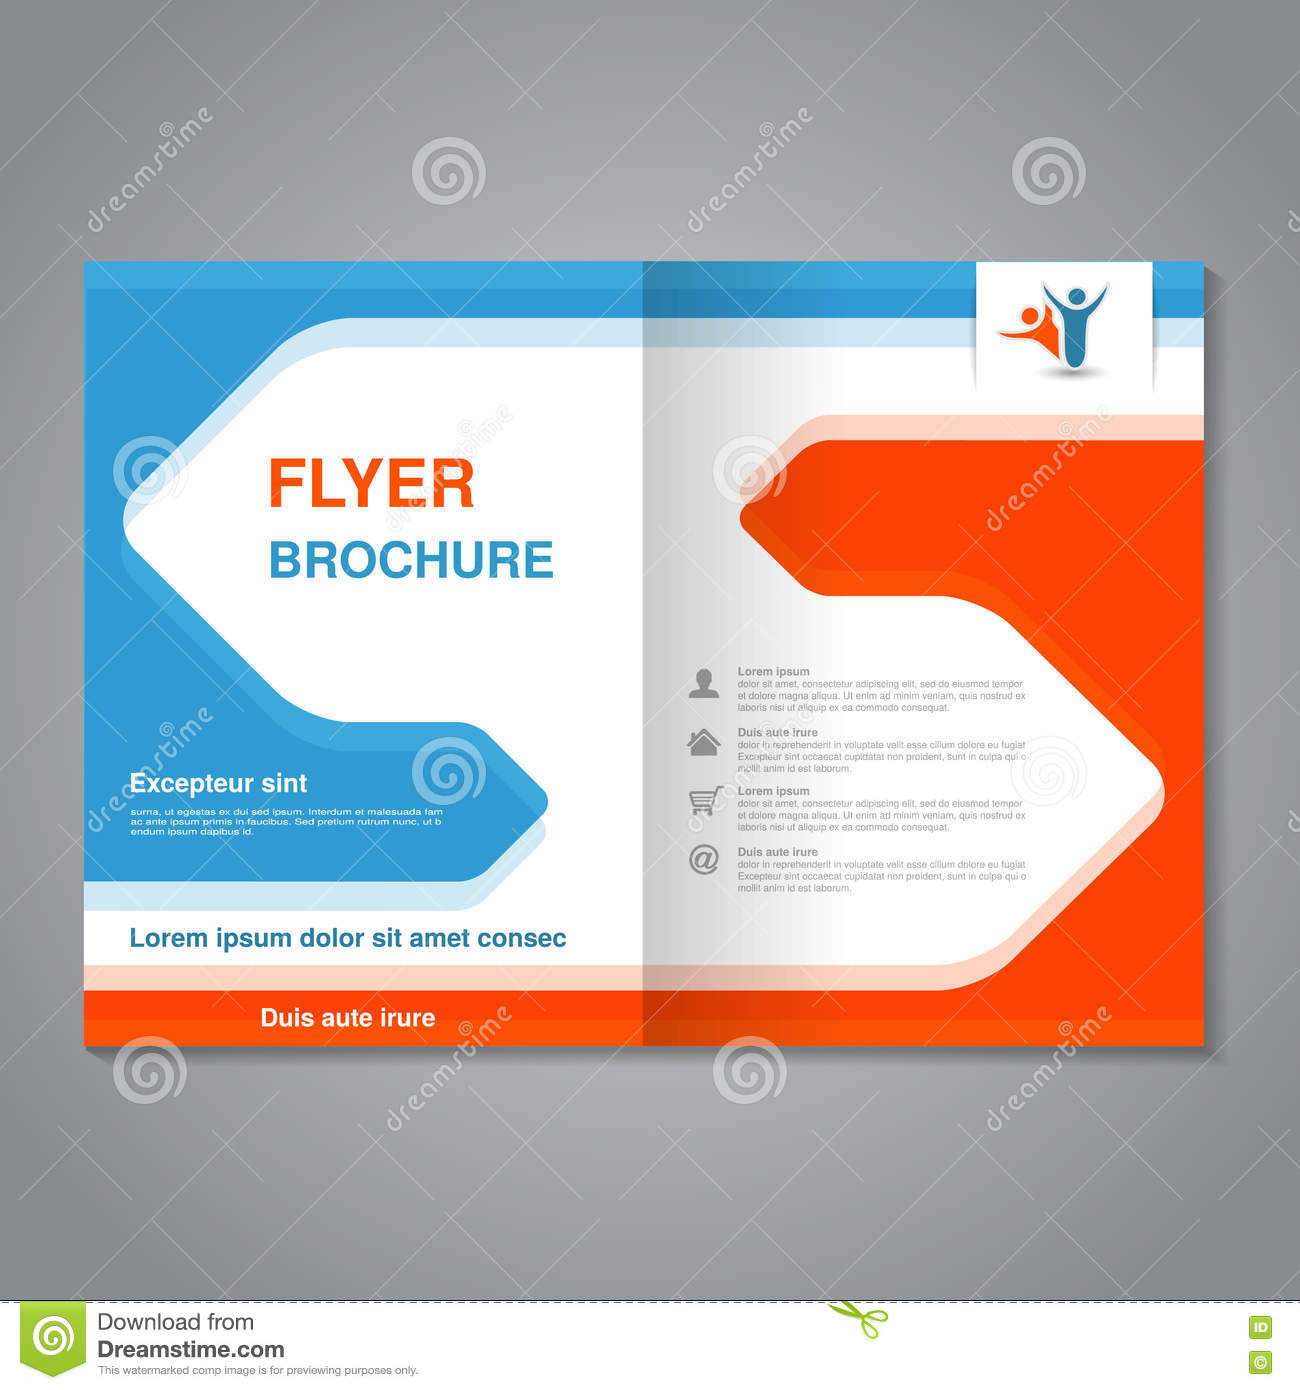 modern brochure abstract flyer with simple design layout template with arrows aspect ratio for a4 size poster of blue orange